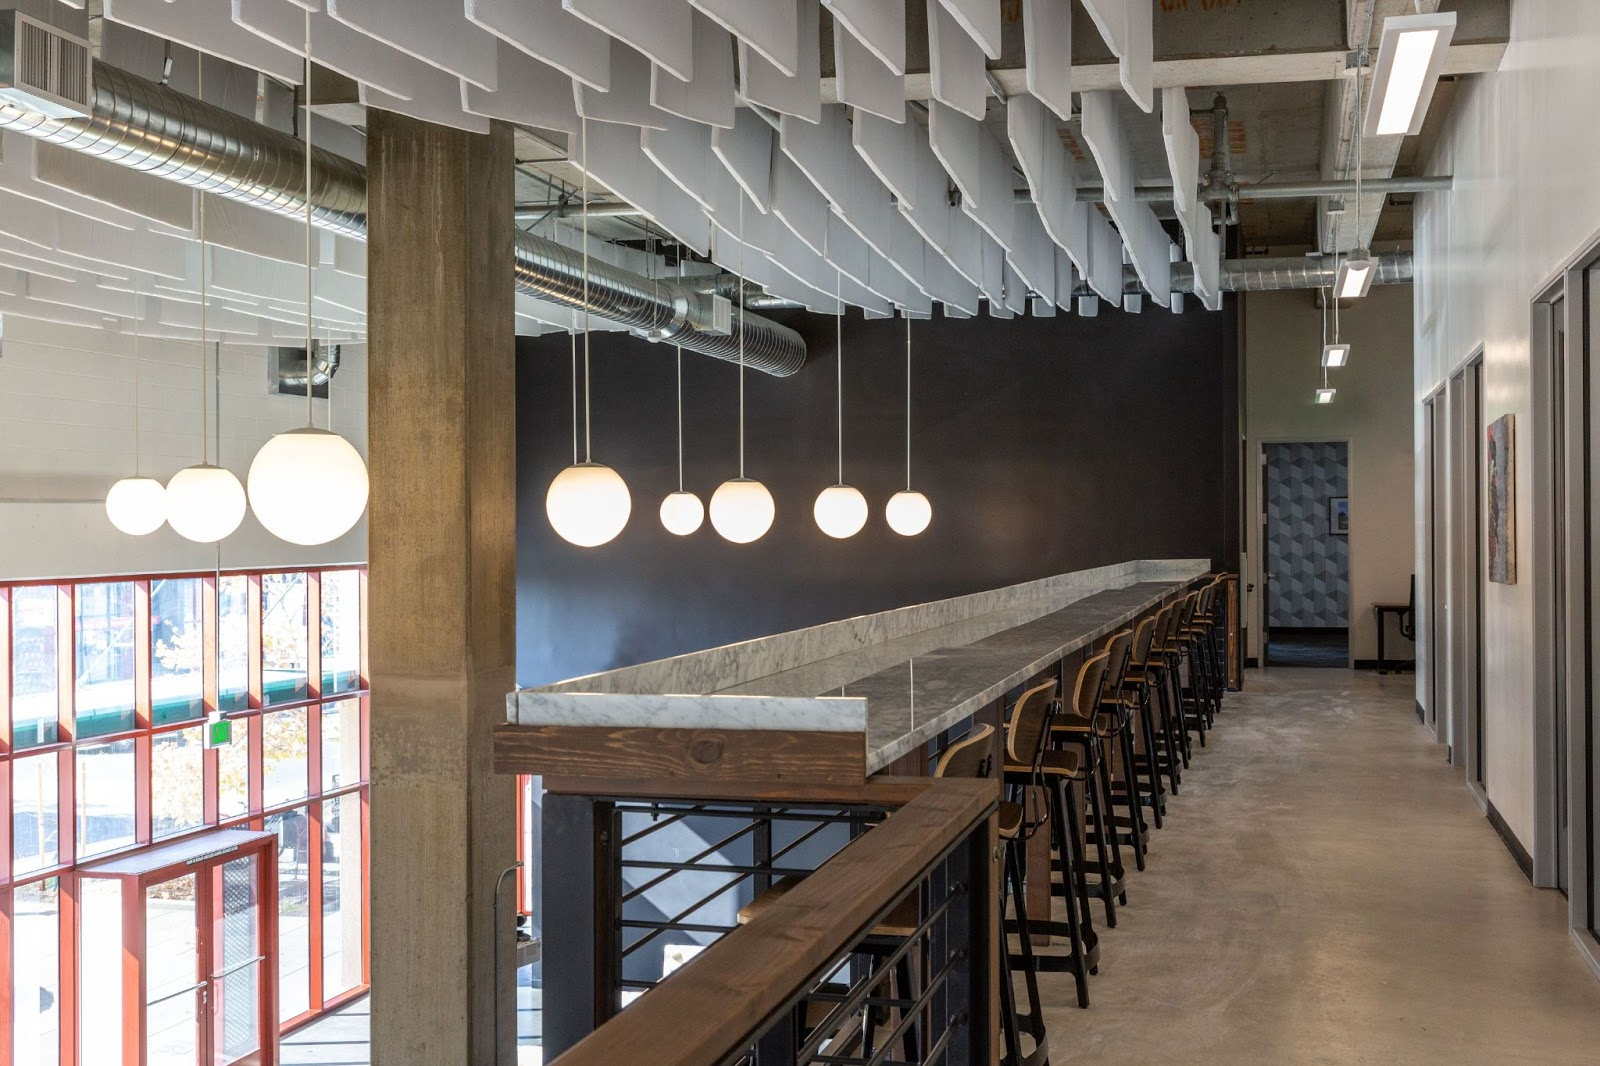 cobiz coworking space modern lighting bar seating upstairs conference rooms